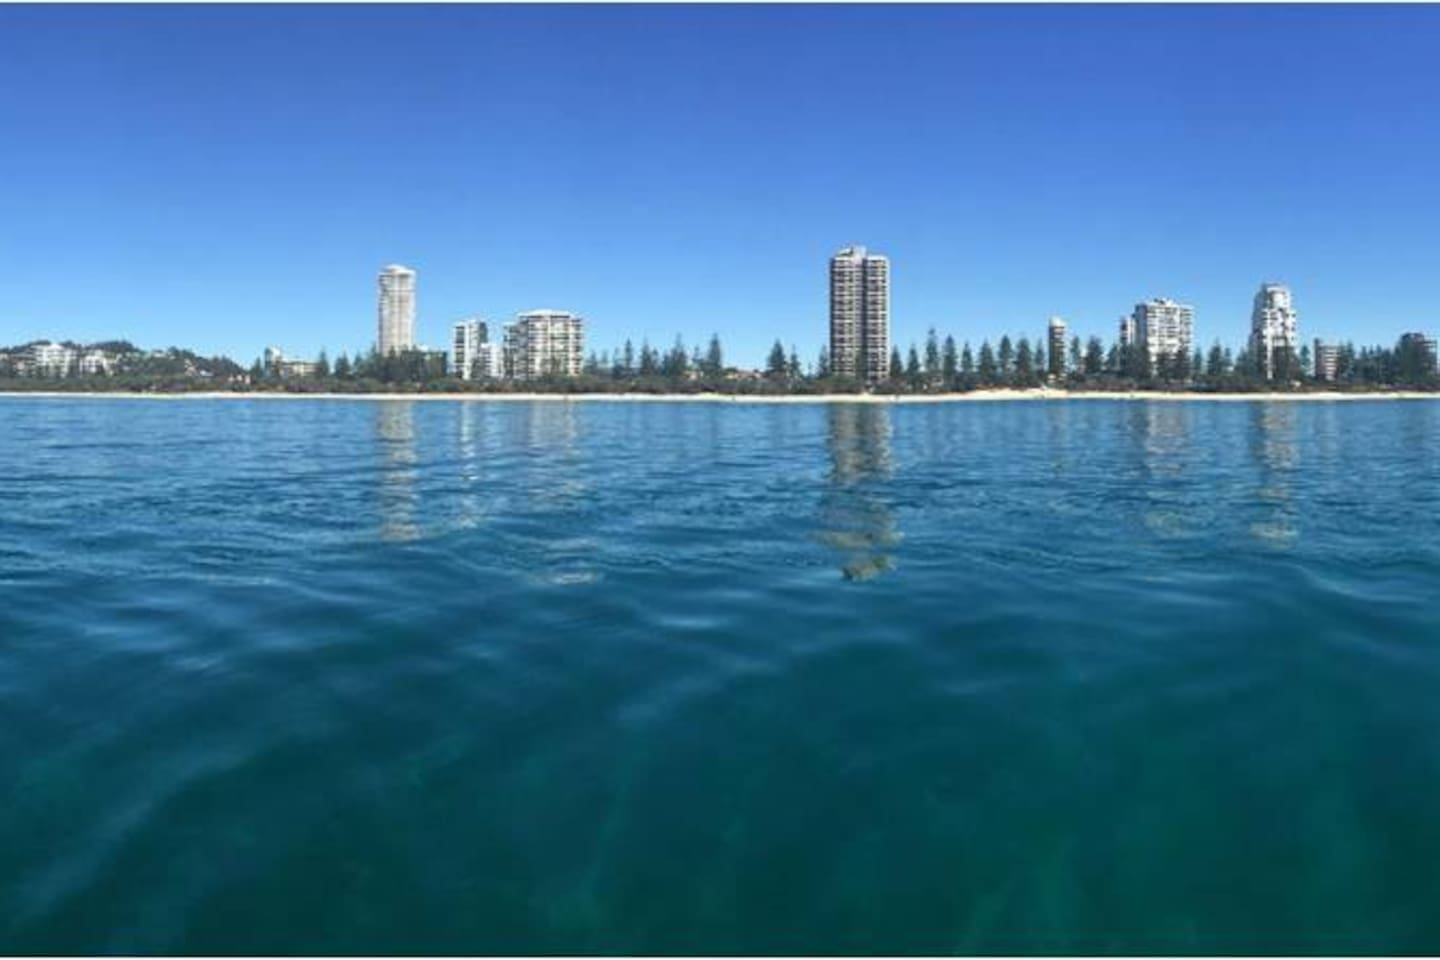 Burleigh Heads from the water